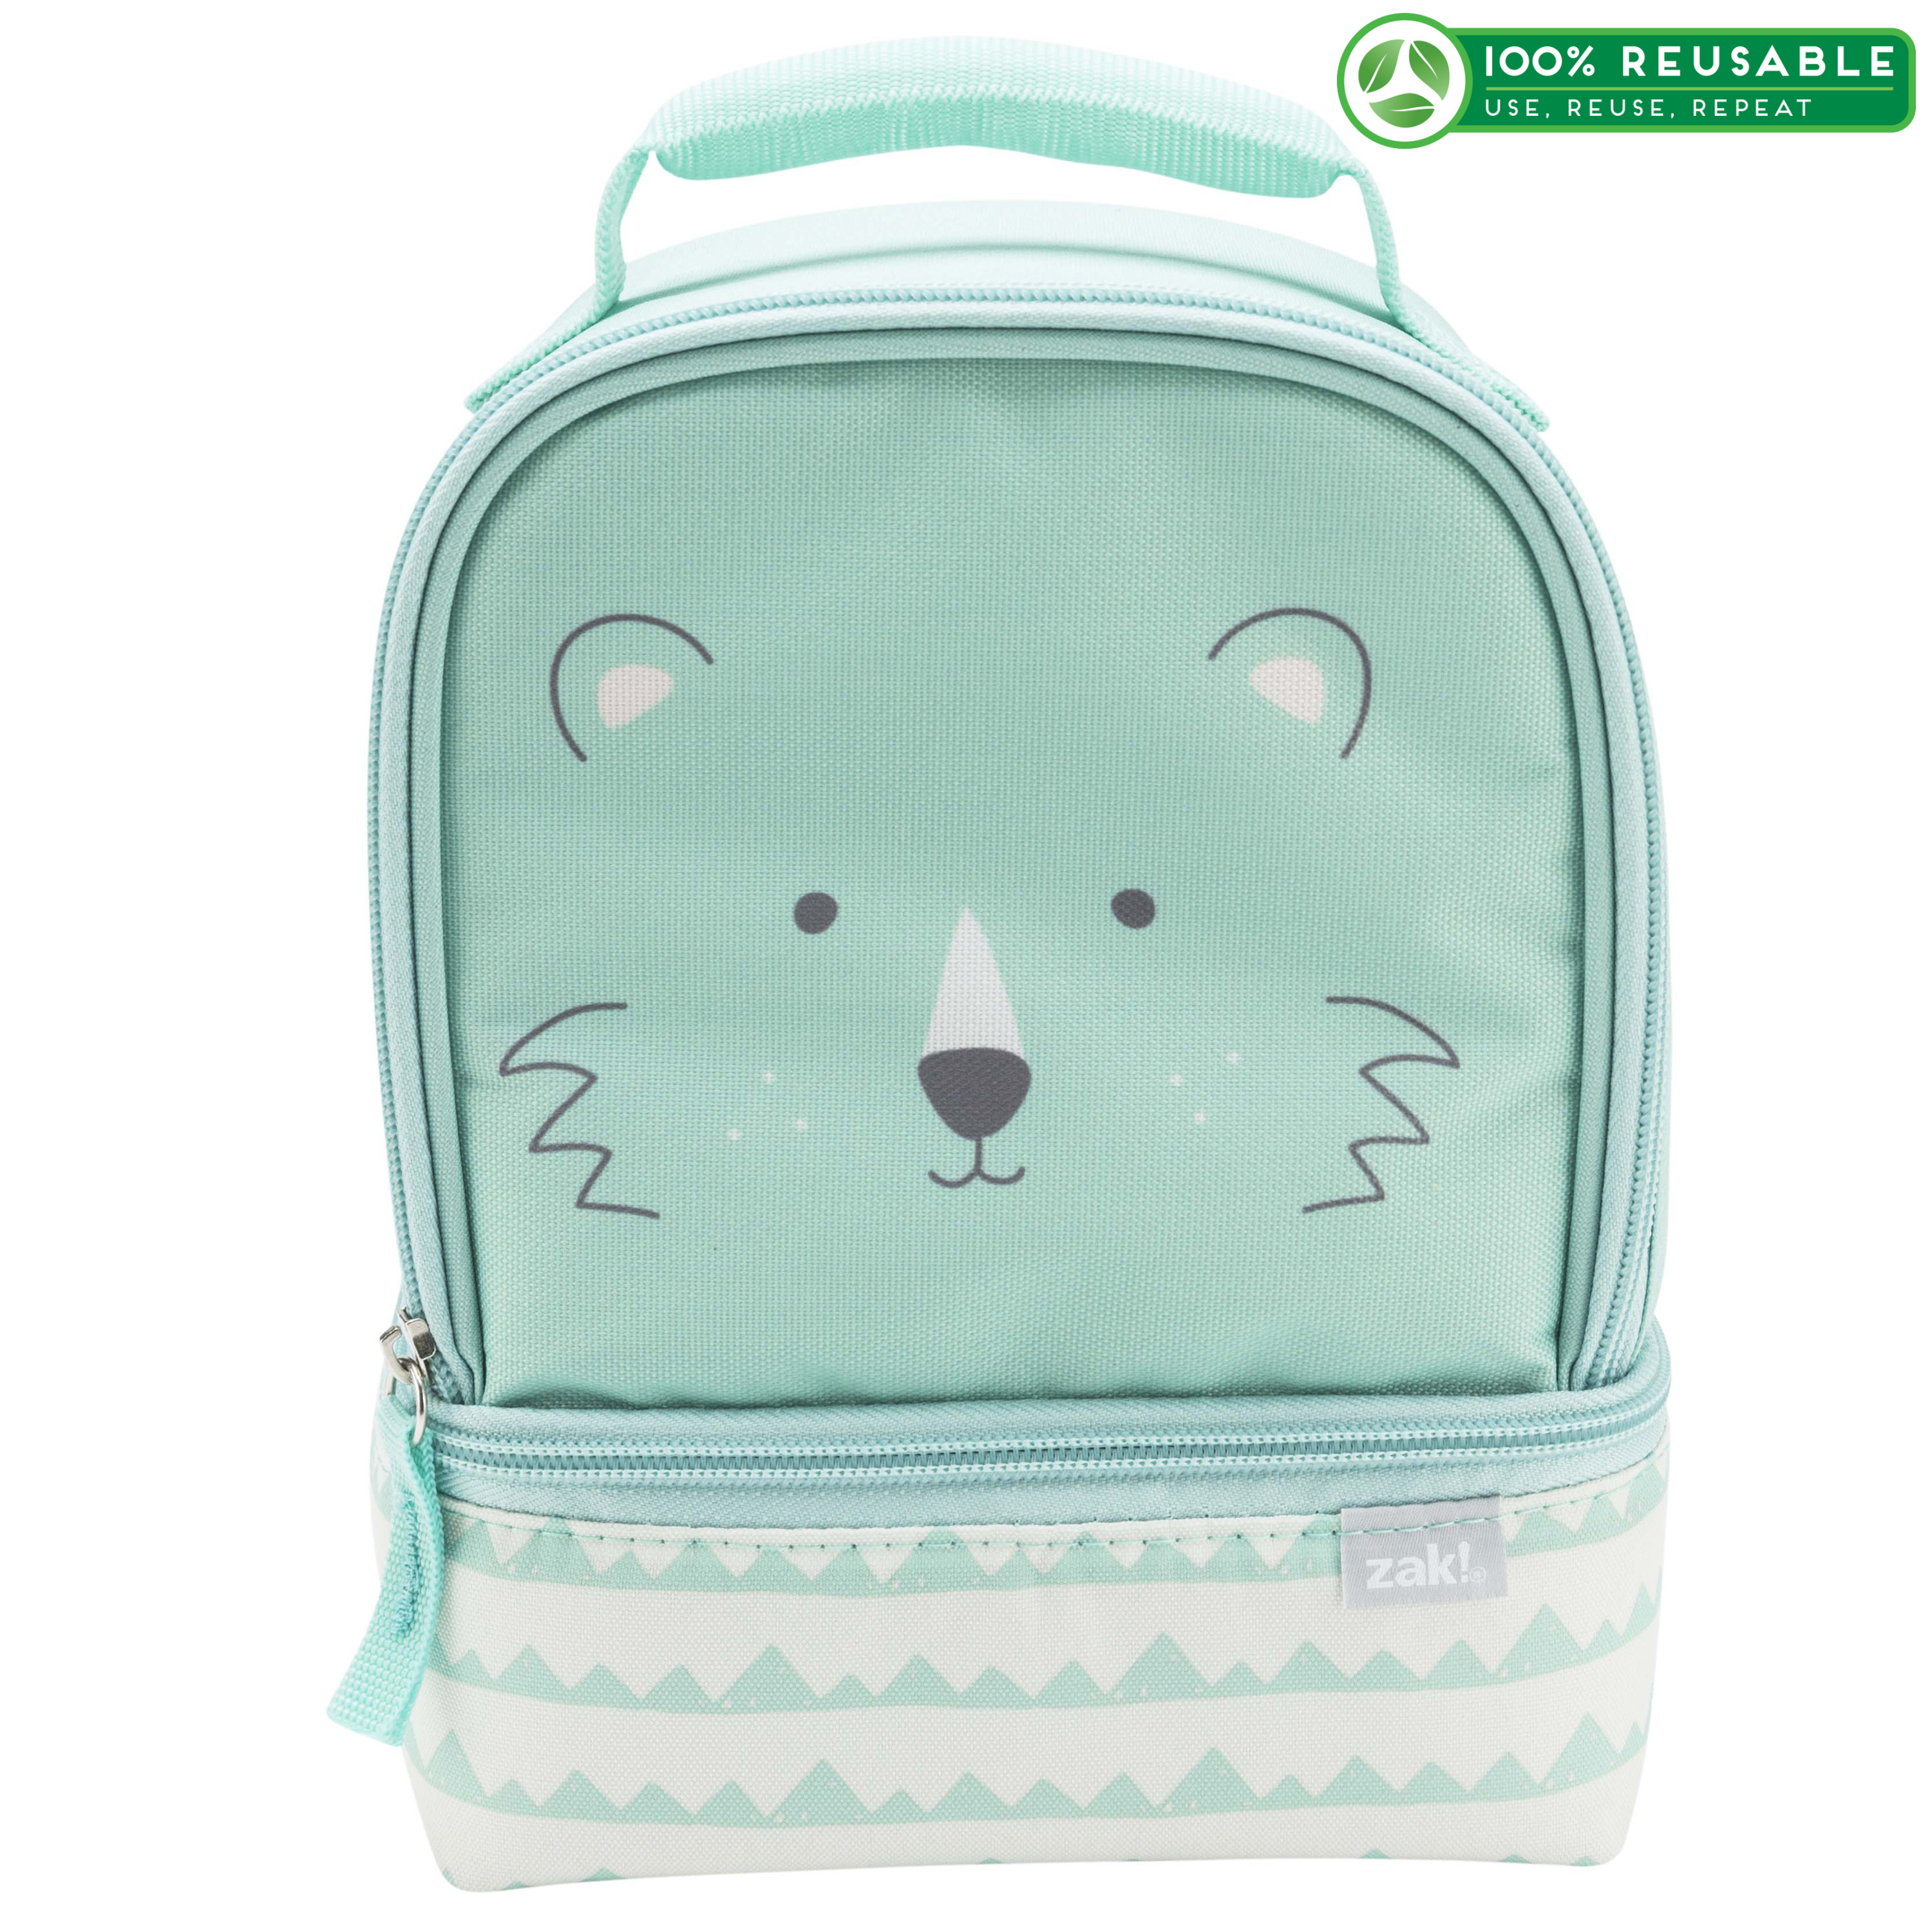 Soft Lines 2-compartment Reusable Insulated Lunch Bag, Teddy Bears slideshow image 1